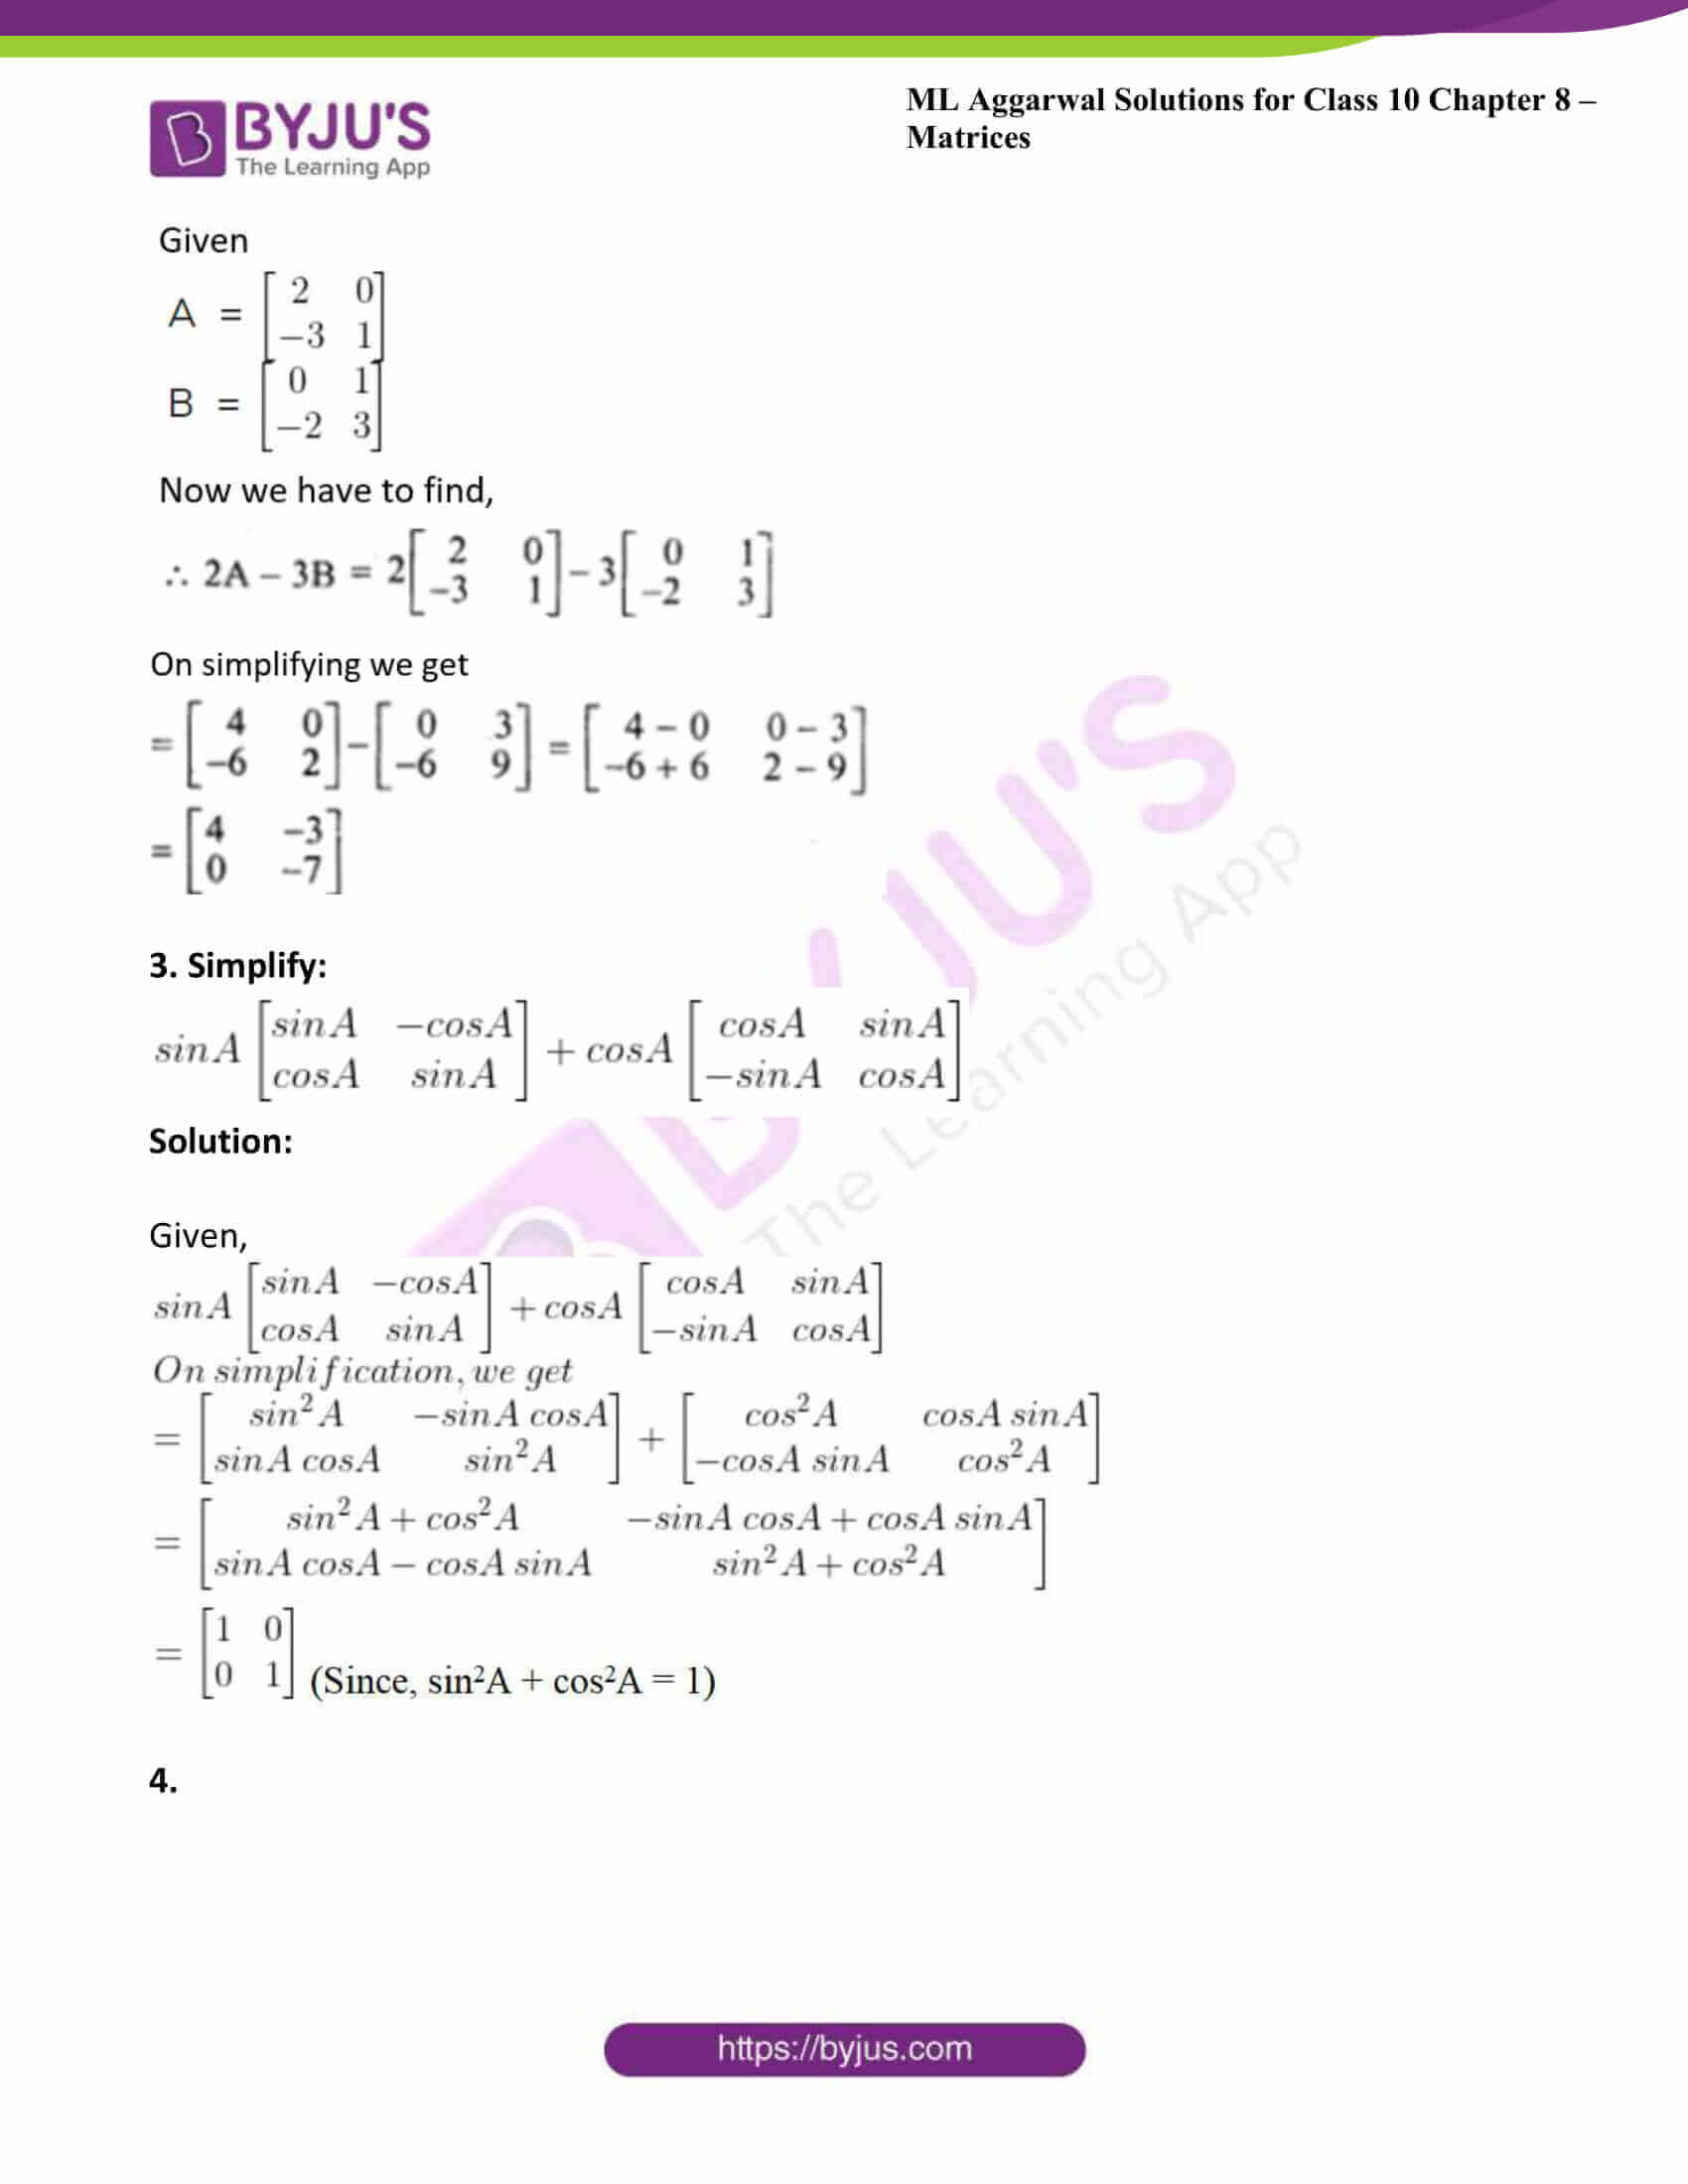 ml aggarwal solutions class 10 maths chapter 8 09